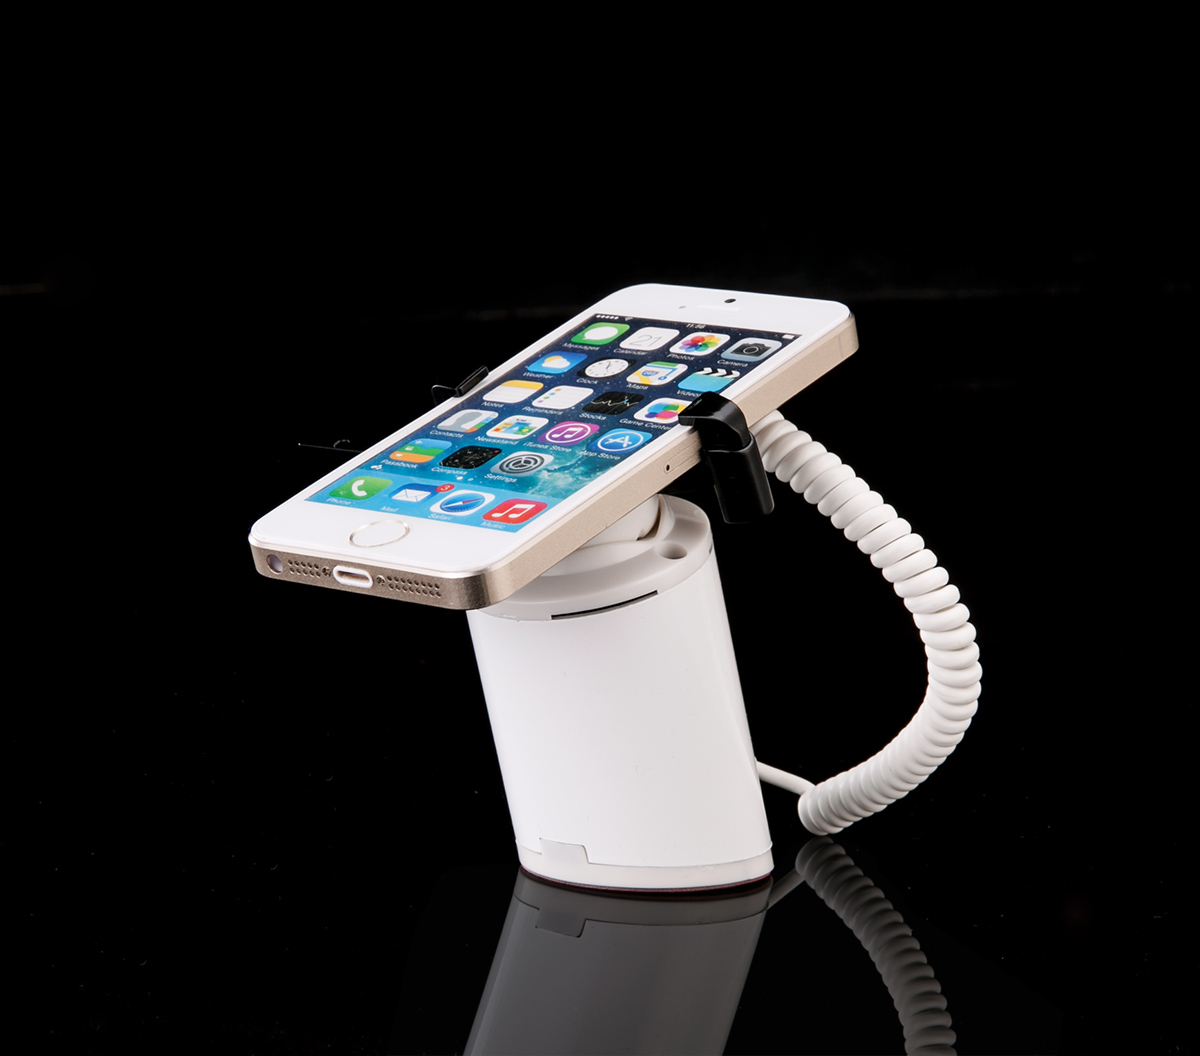 COMER desktop display mobile phone charging and alarm sensor stands with charger cord and clip lock